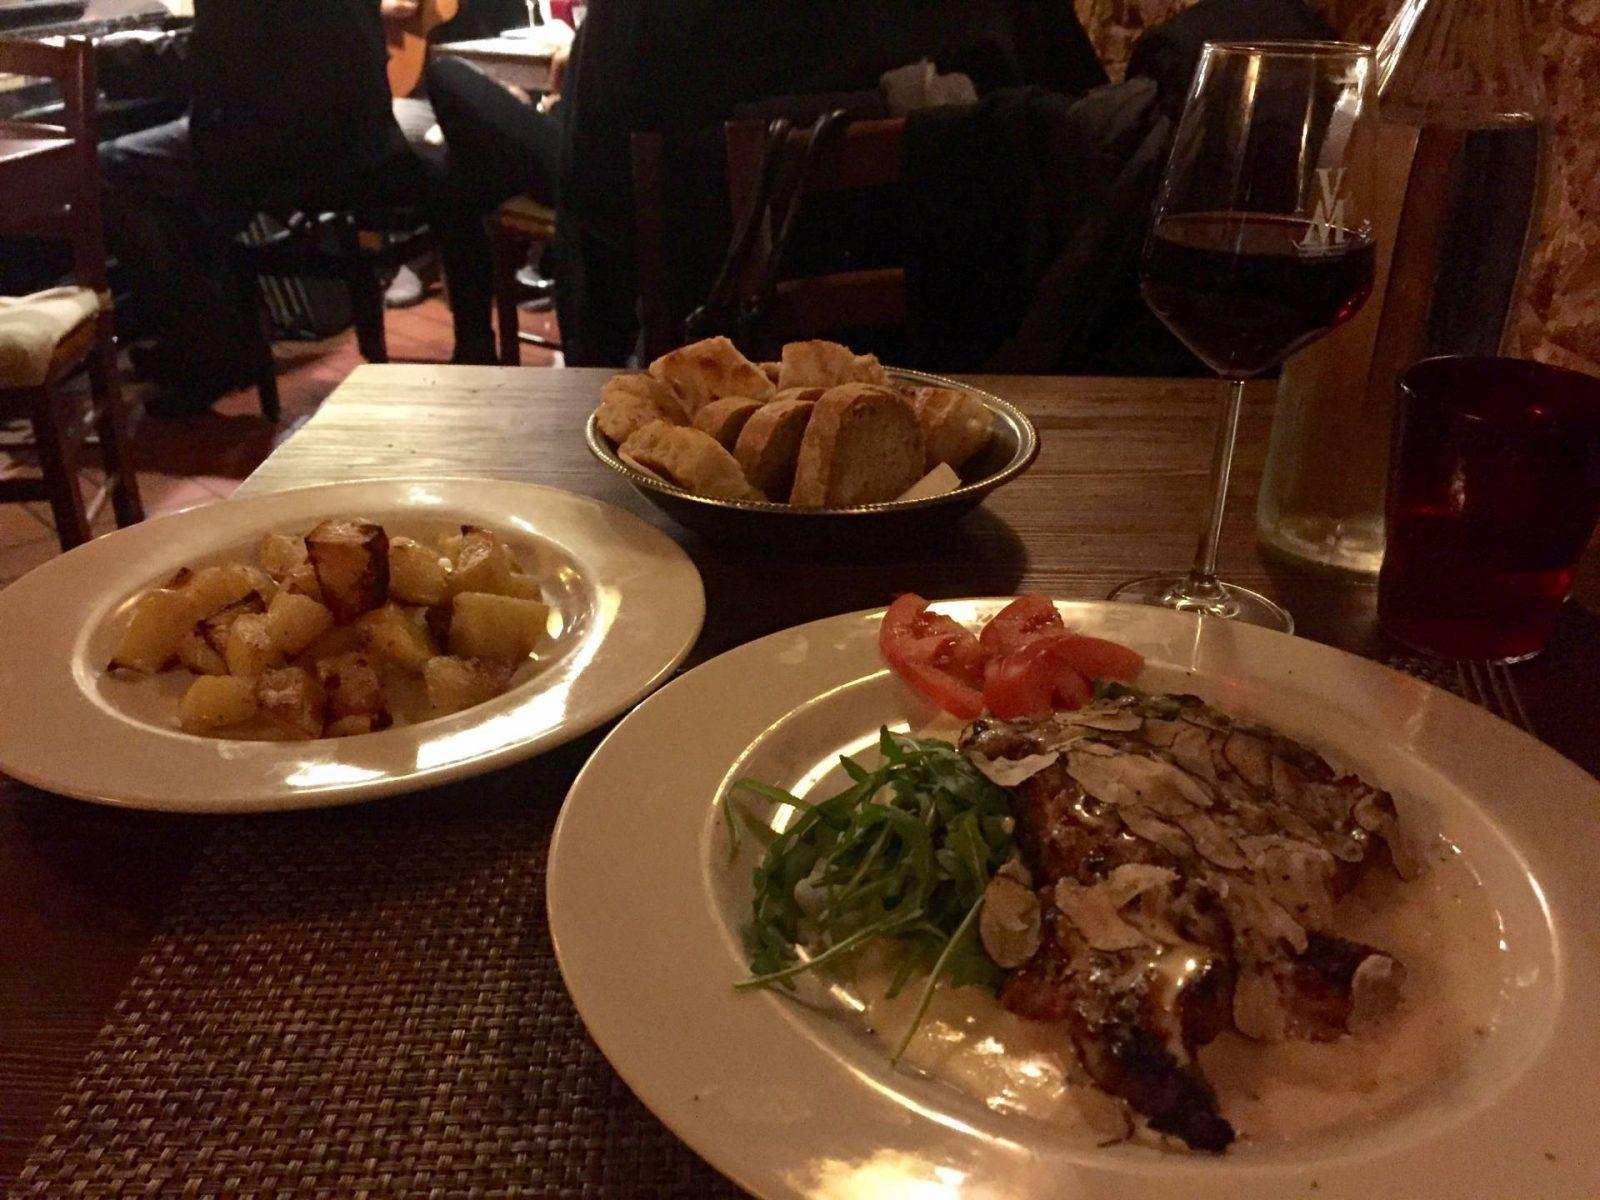 Truffle Steak and Jazz Duets: An Authentic Florentine Meal at Trattoria Vecchio Mercato